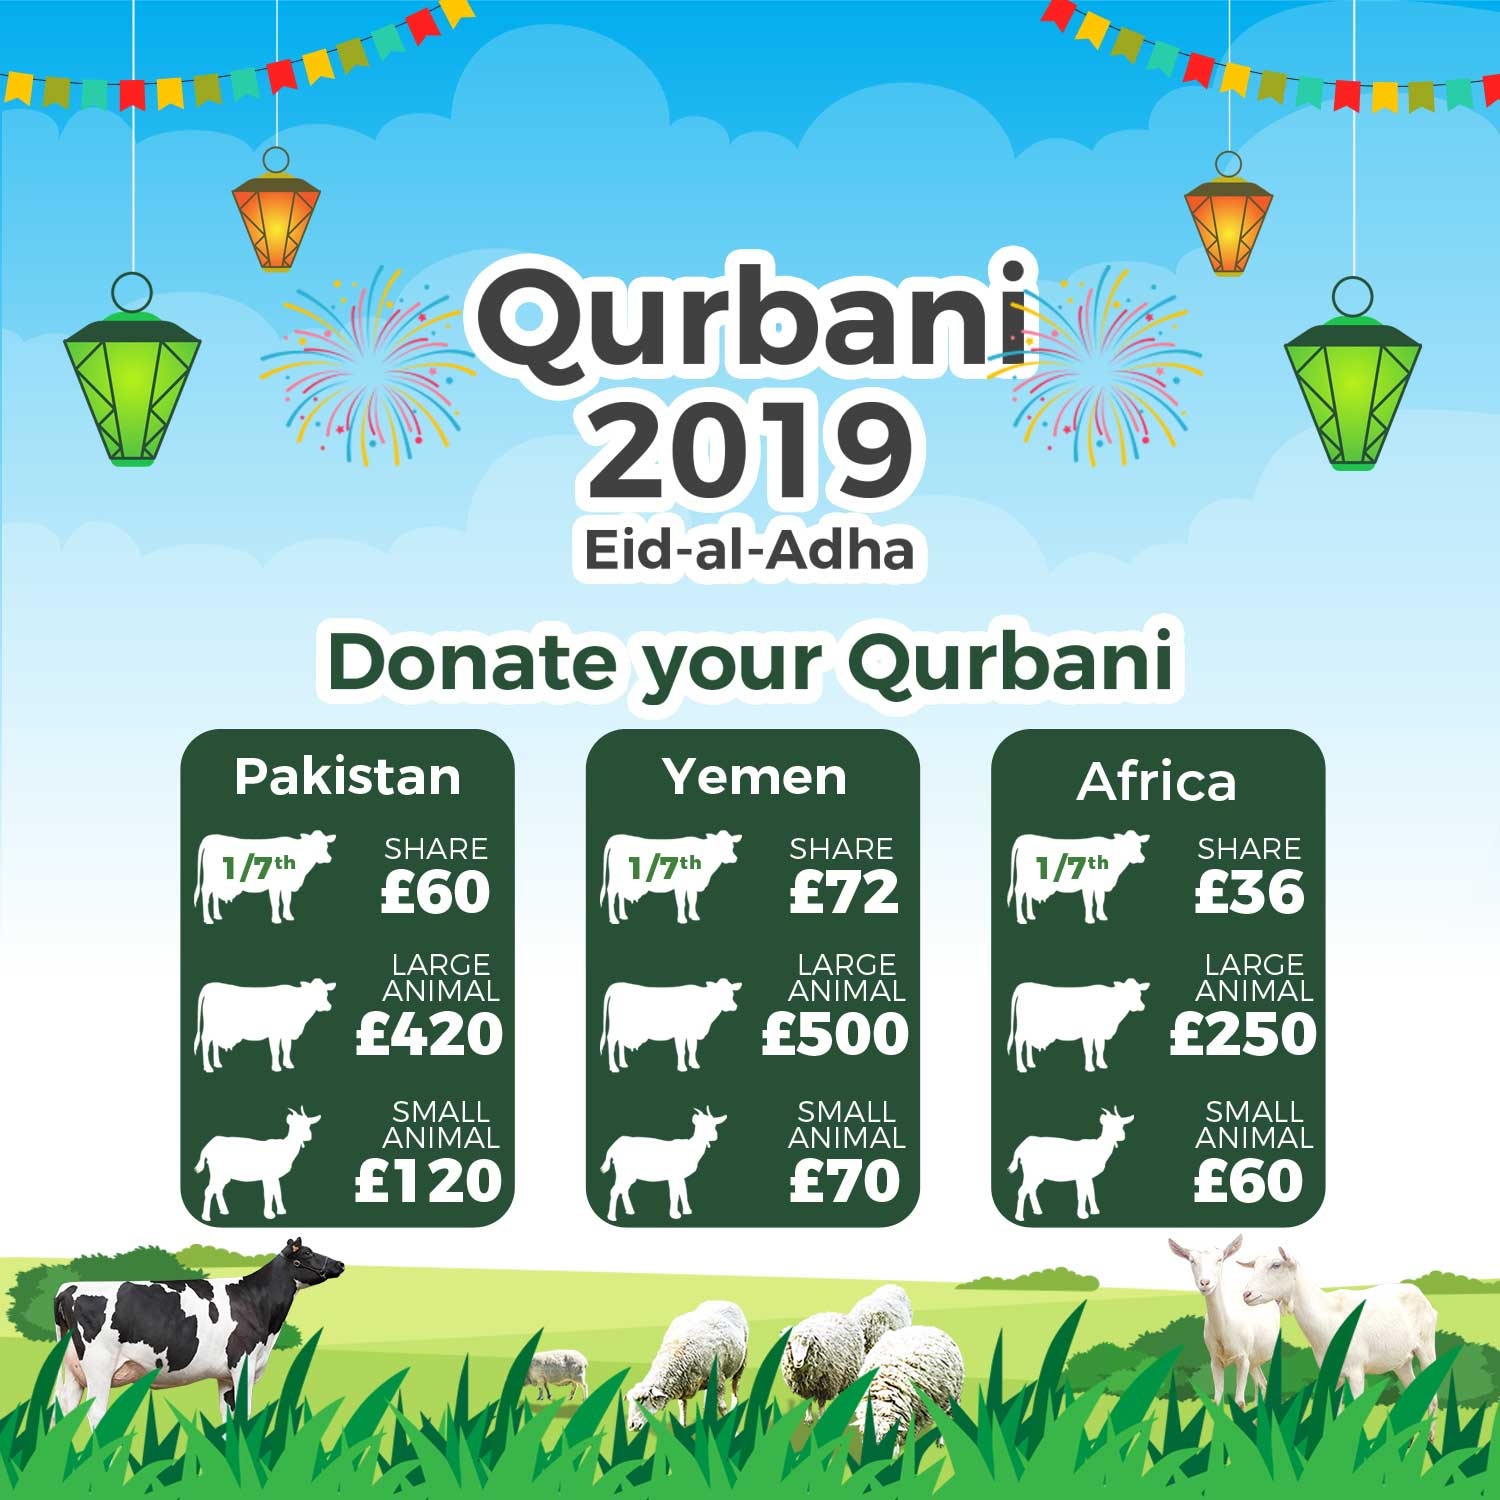 Qurbani Appeal 2019 - Share For £36, Small Animal For £60 - Donate Now